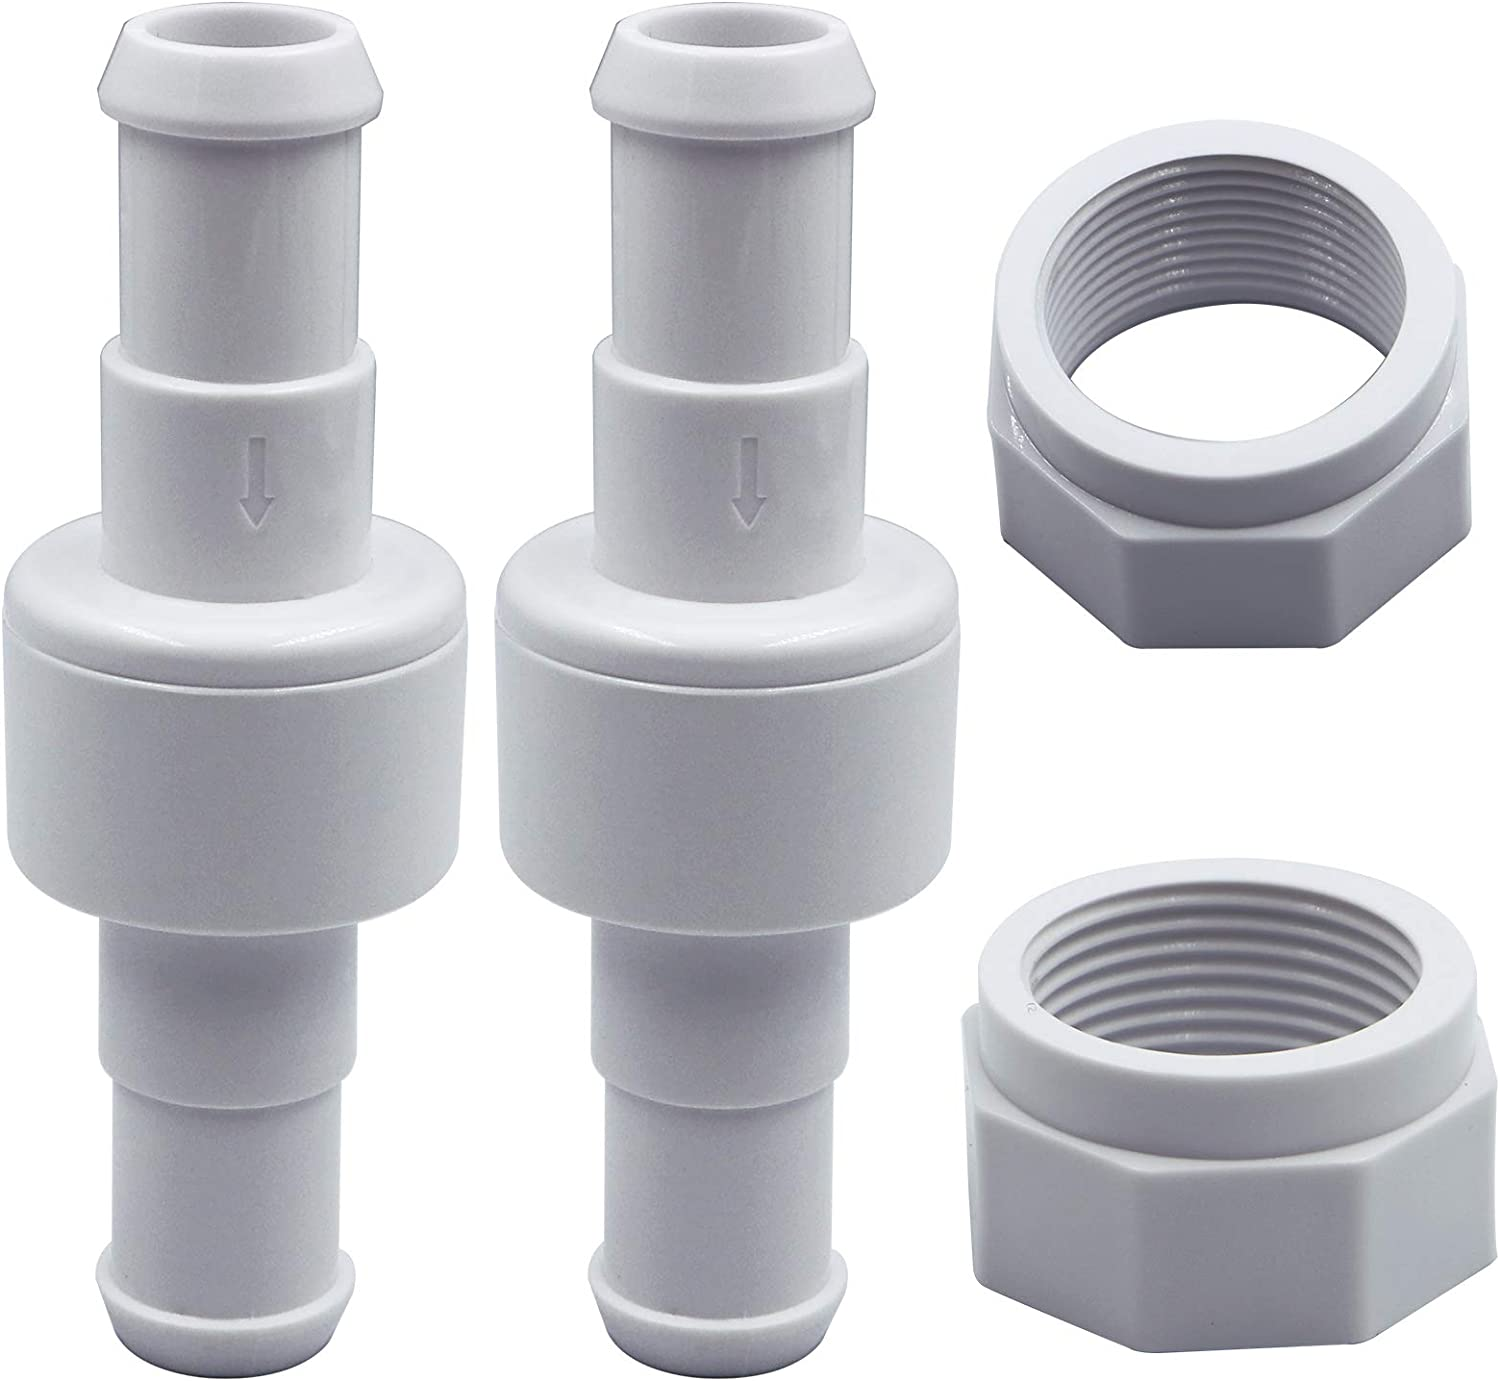 Upgraded Version for Polaris Pool Cleaner Replement Kits Suitable for Polaris 180,280,380 Pool Cleaner G52 Backup Valve Replacement Kit /& D20 Hose Swivel /& D15 Feed Hose Nut Easy to Install